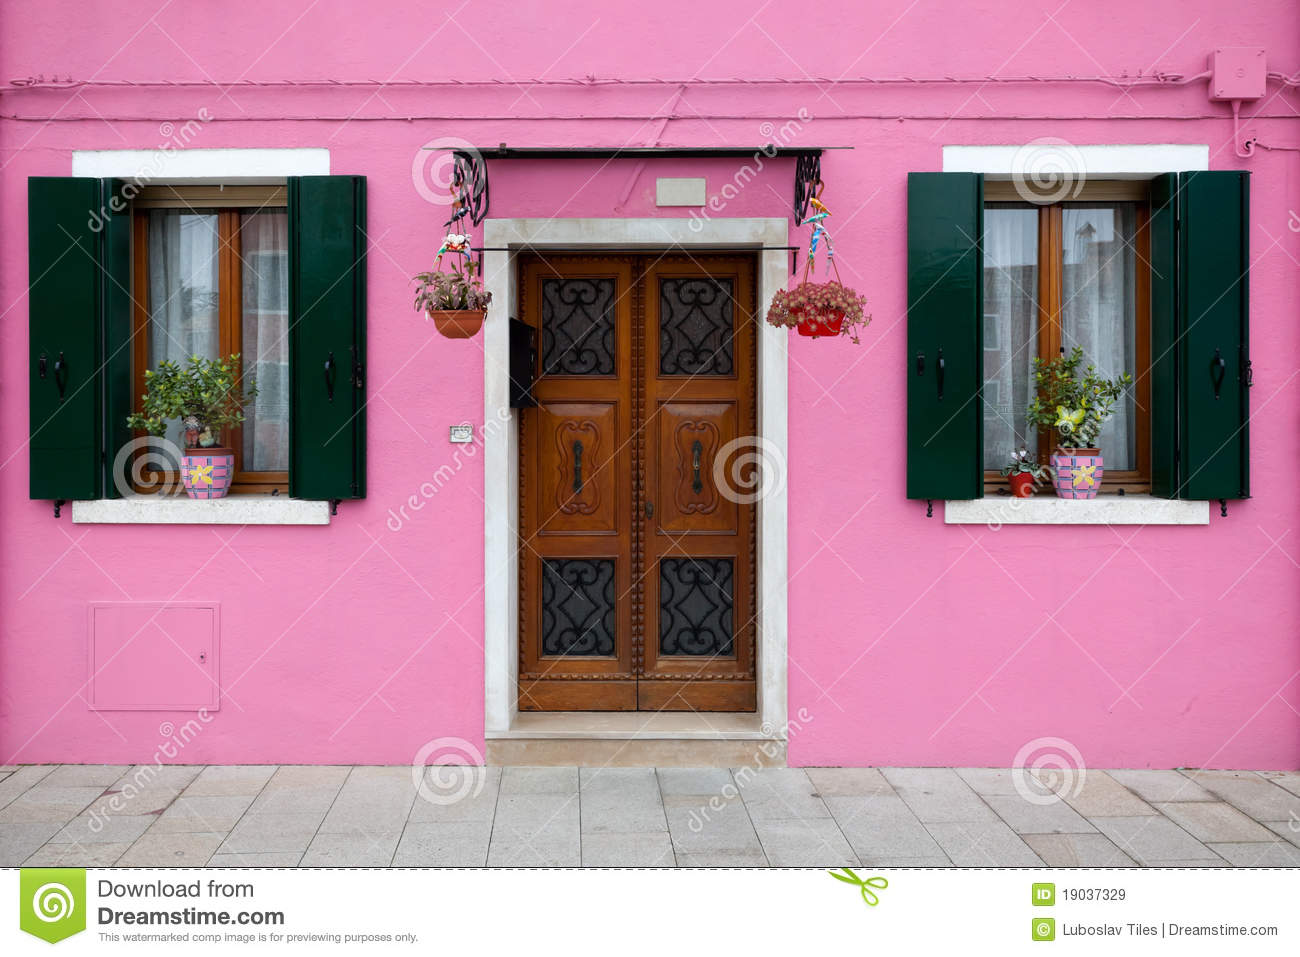 Colorful House In Burano Island, Venice, Italy Stock Image - Image ...